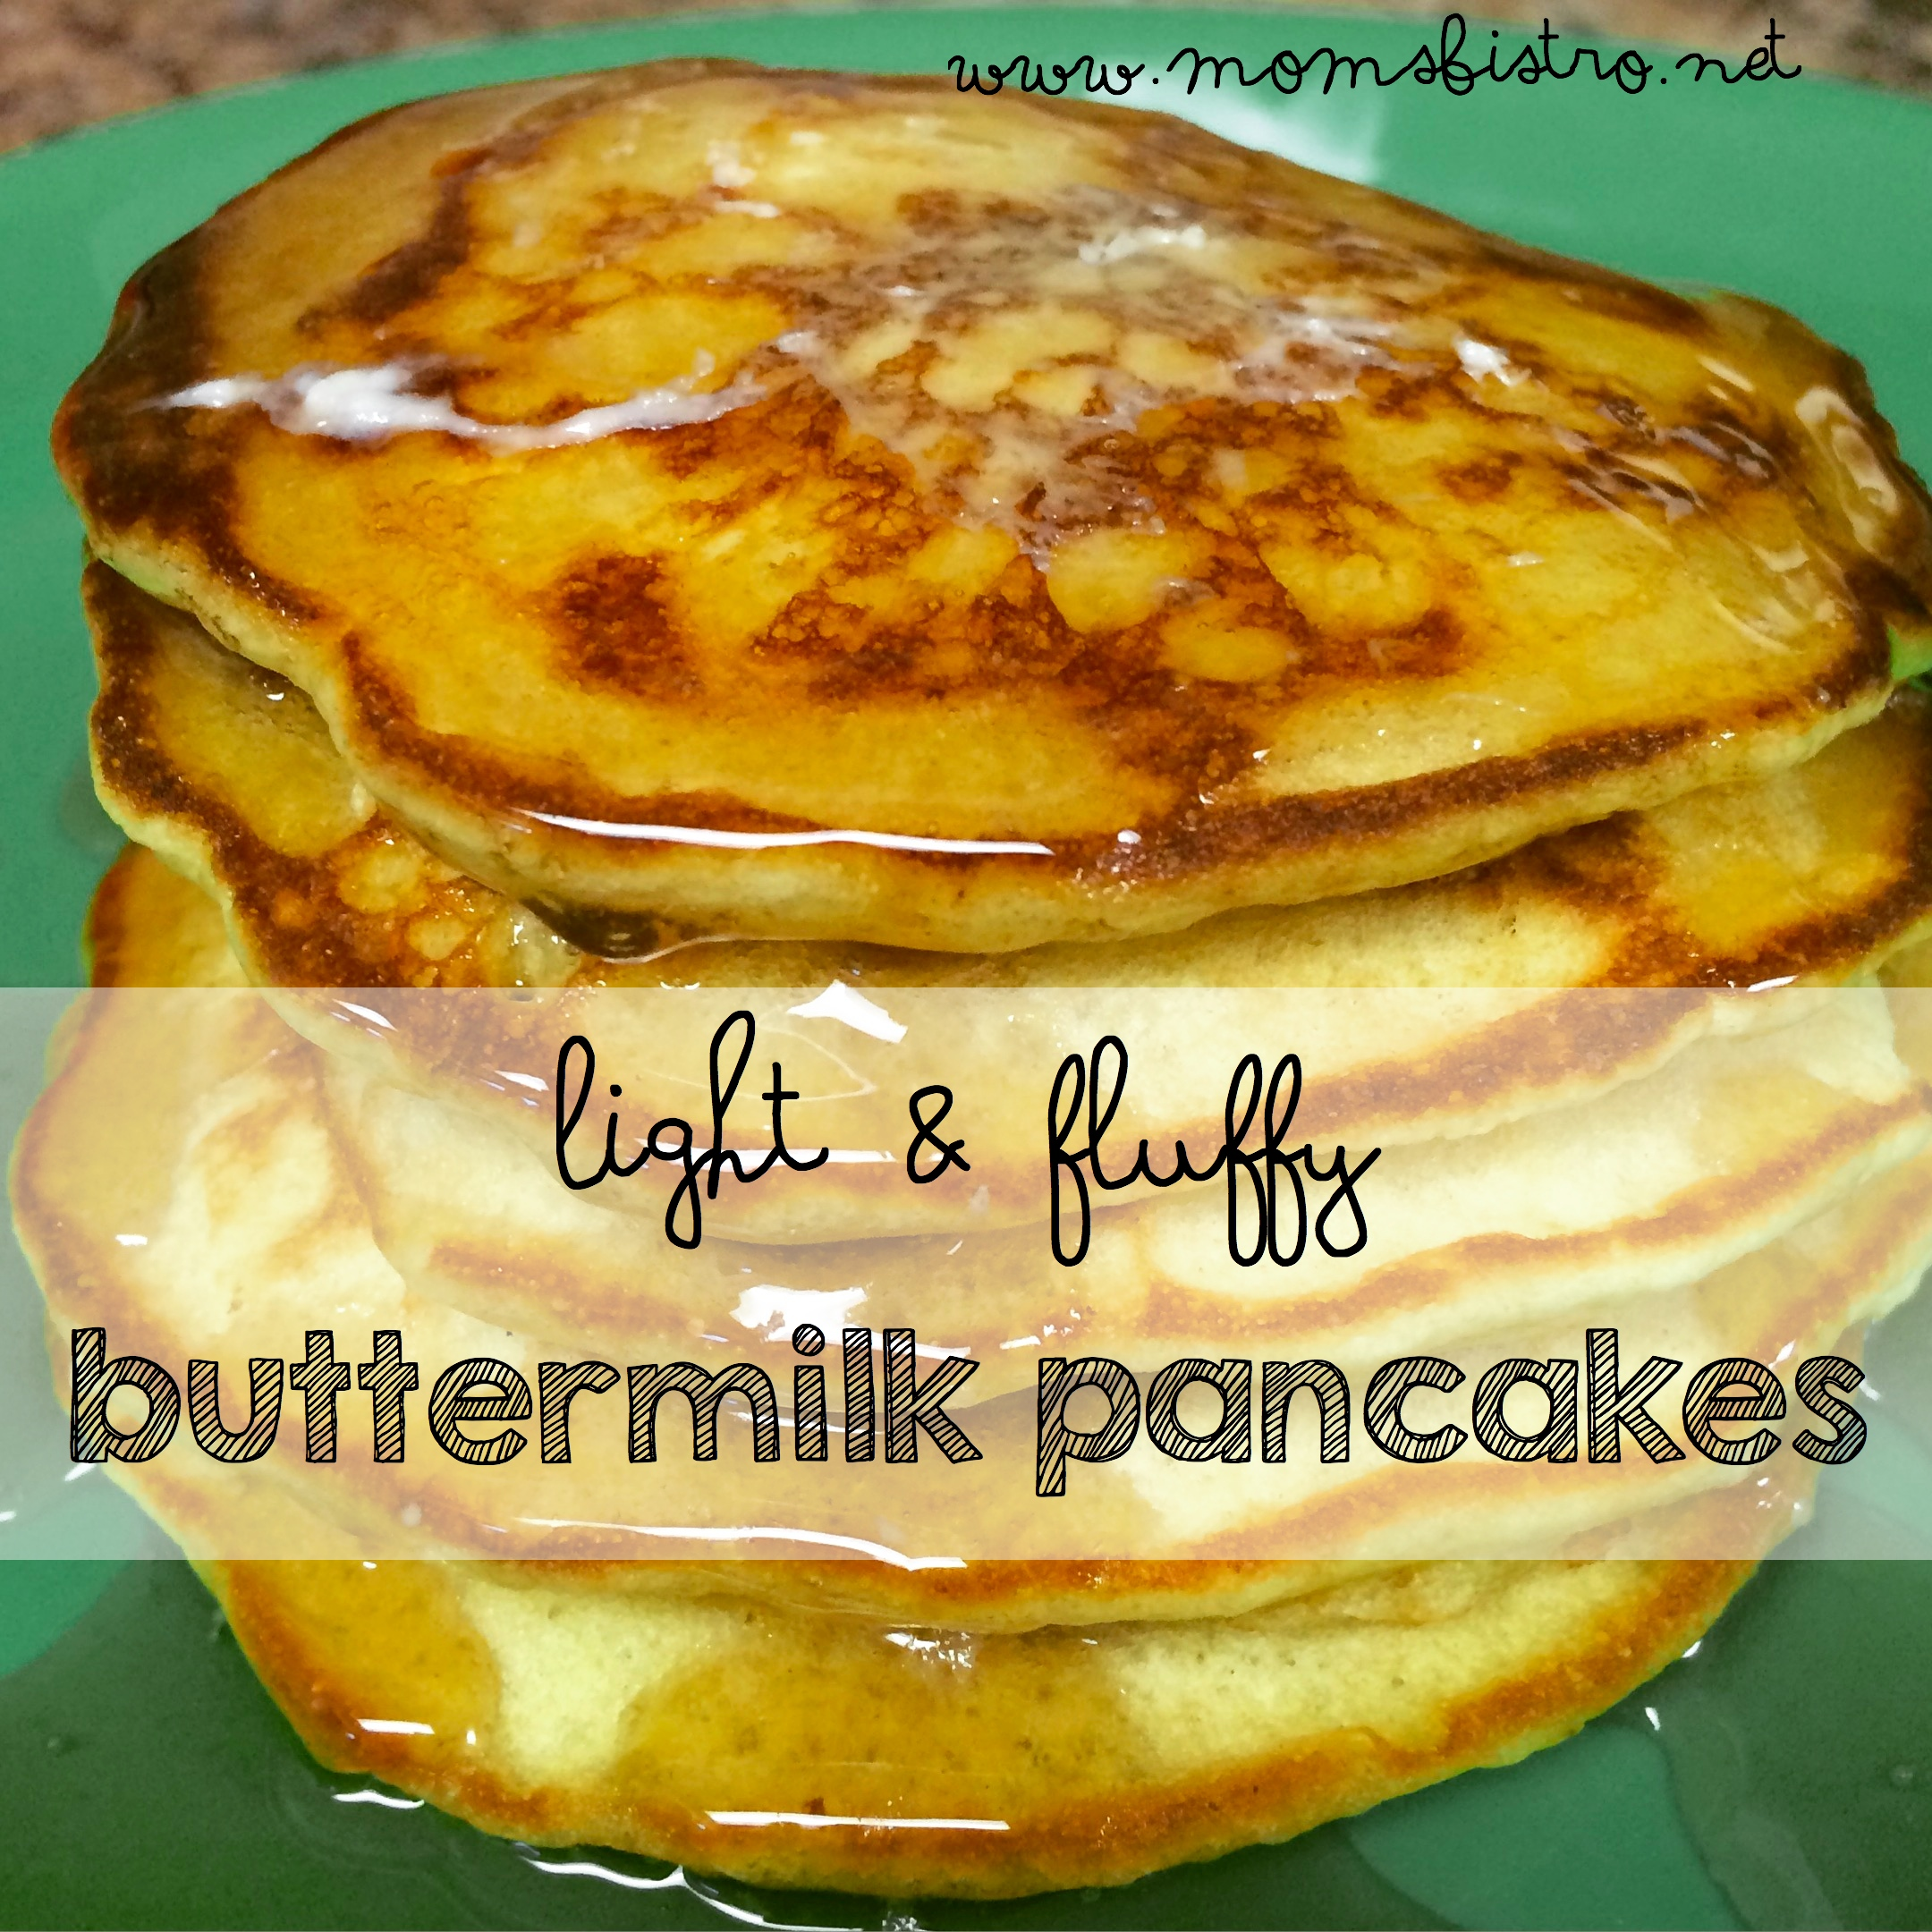 Light and Fluffy Buttermilk Pancakes Recipe Plus Learn How To Make Buttermilk With Only Milk and Lemon Juice